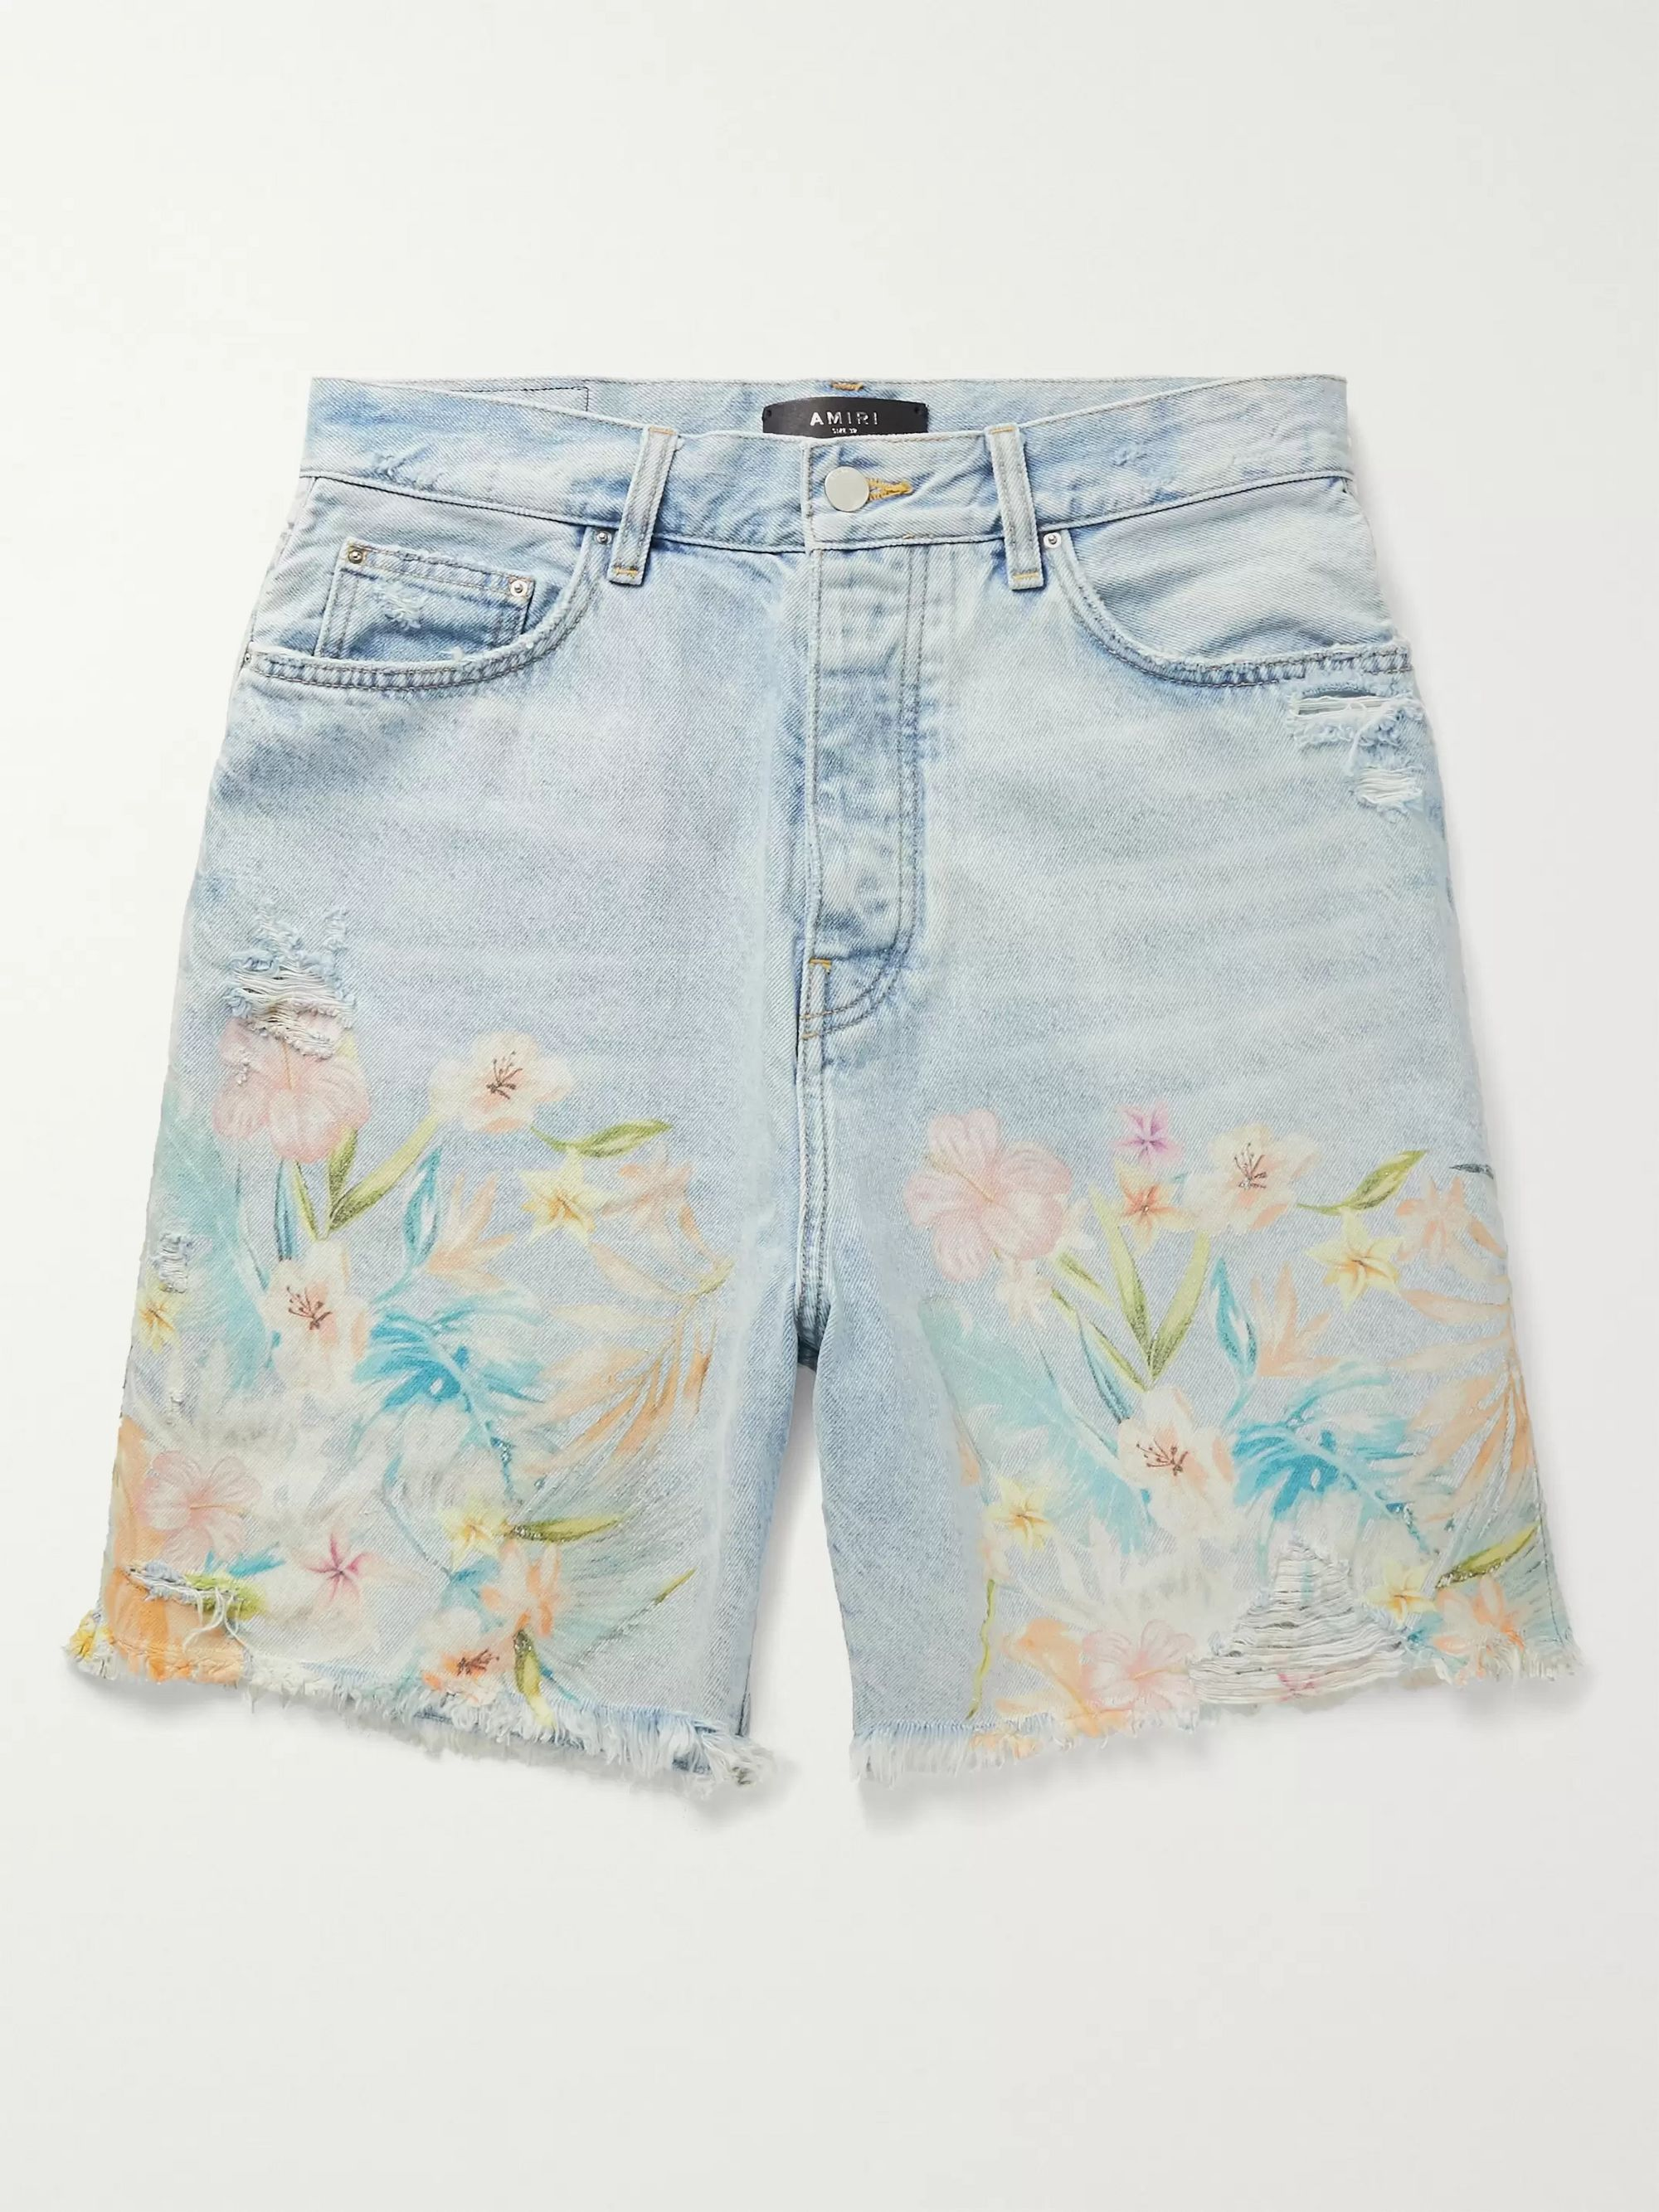 AMIRI Distressed Floral-Print Denim Shorts